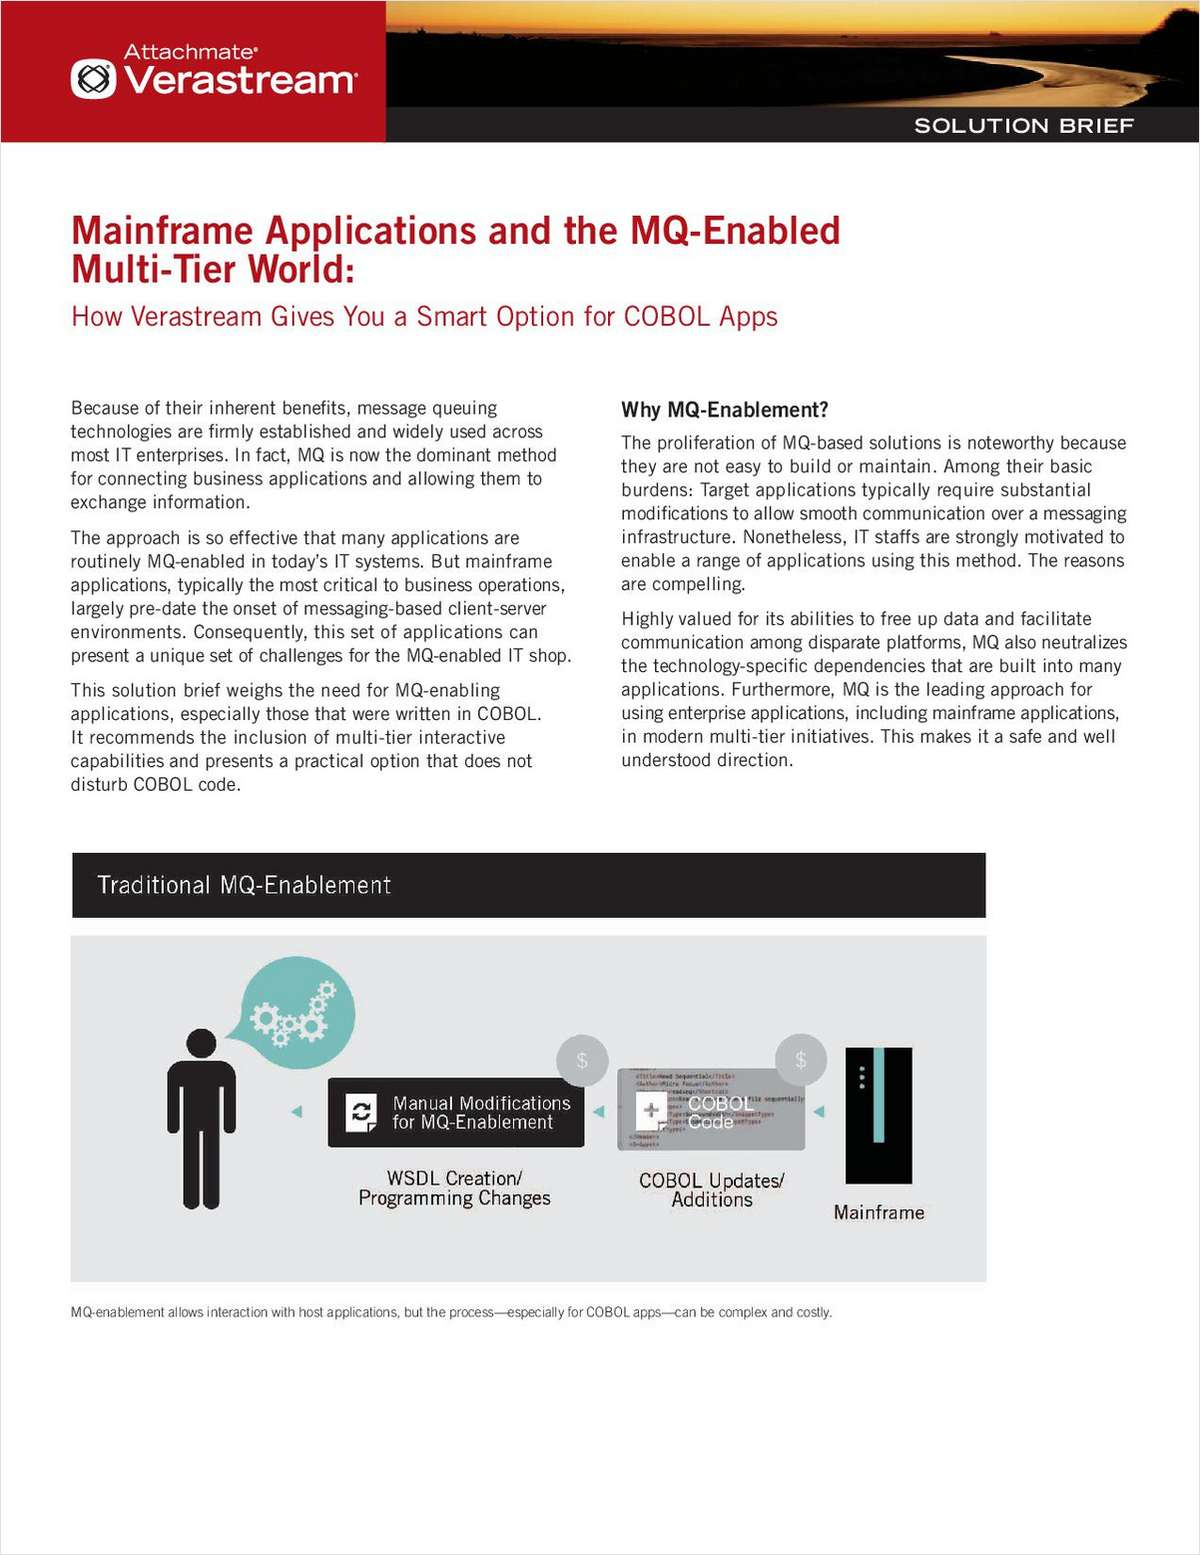 Mainframe Applications and the MQ-Enabled Multi-Tier World